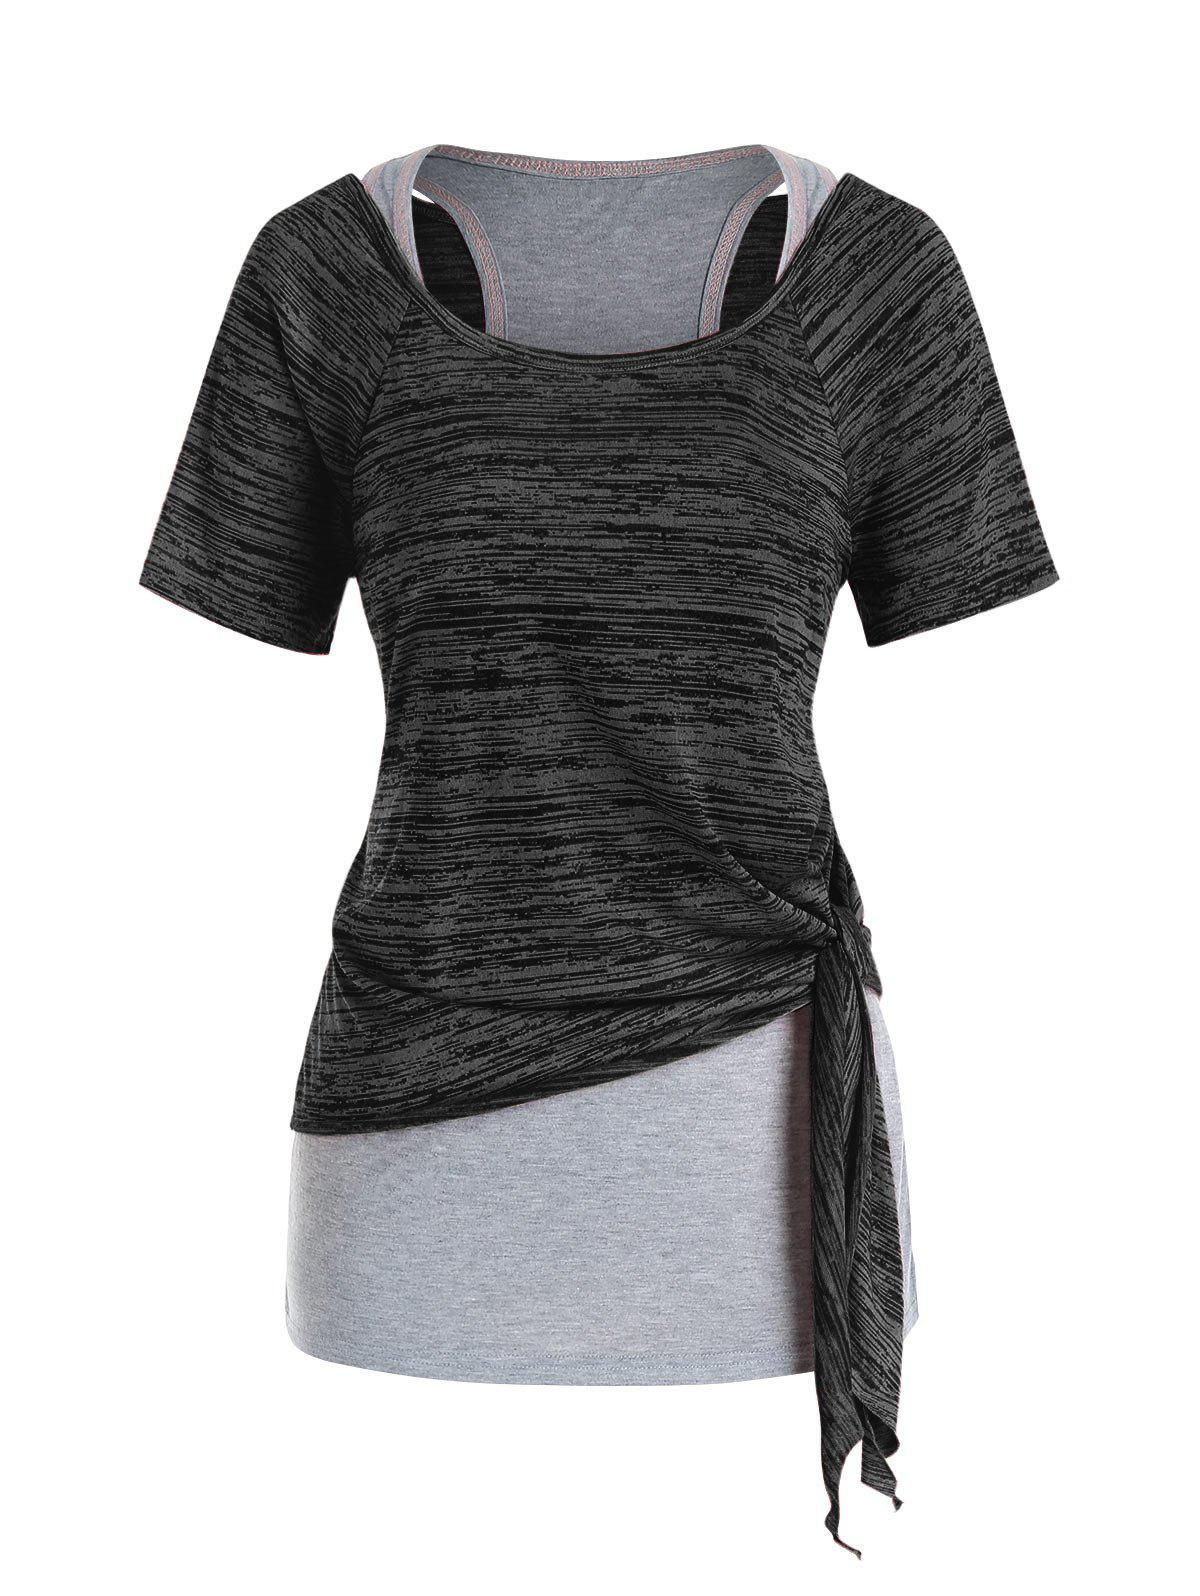 Plus Size Marled Tie Knot T Shirt and Racerback Tank Top Set - DARK SLATE GREY 5X